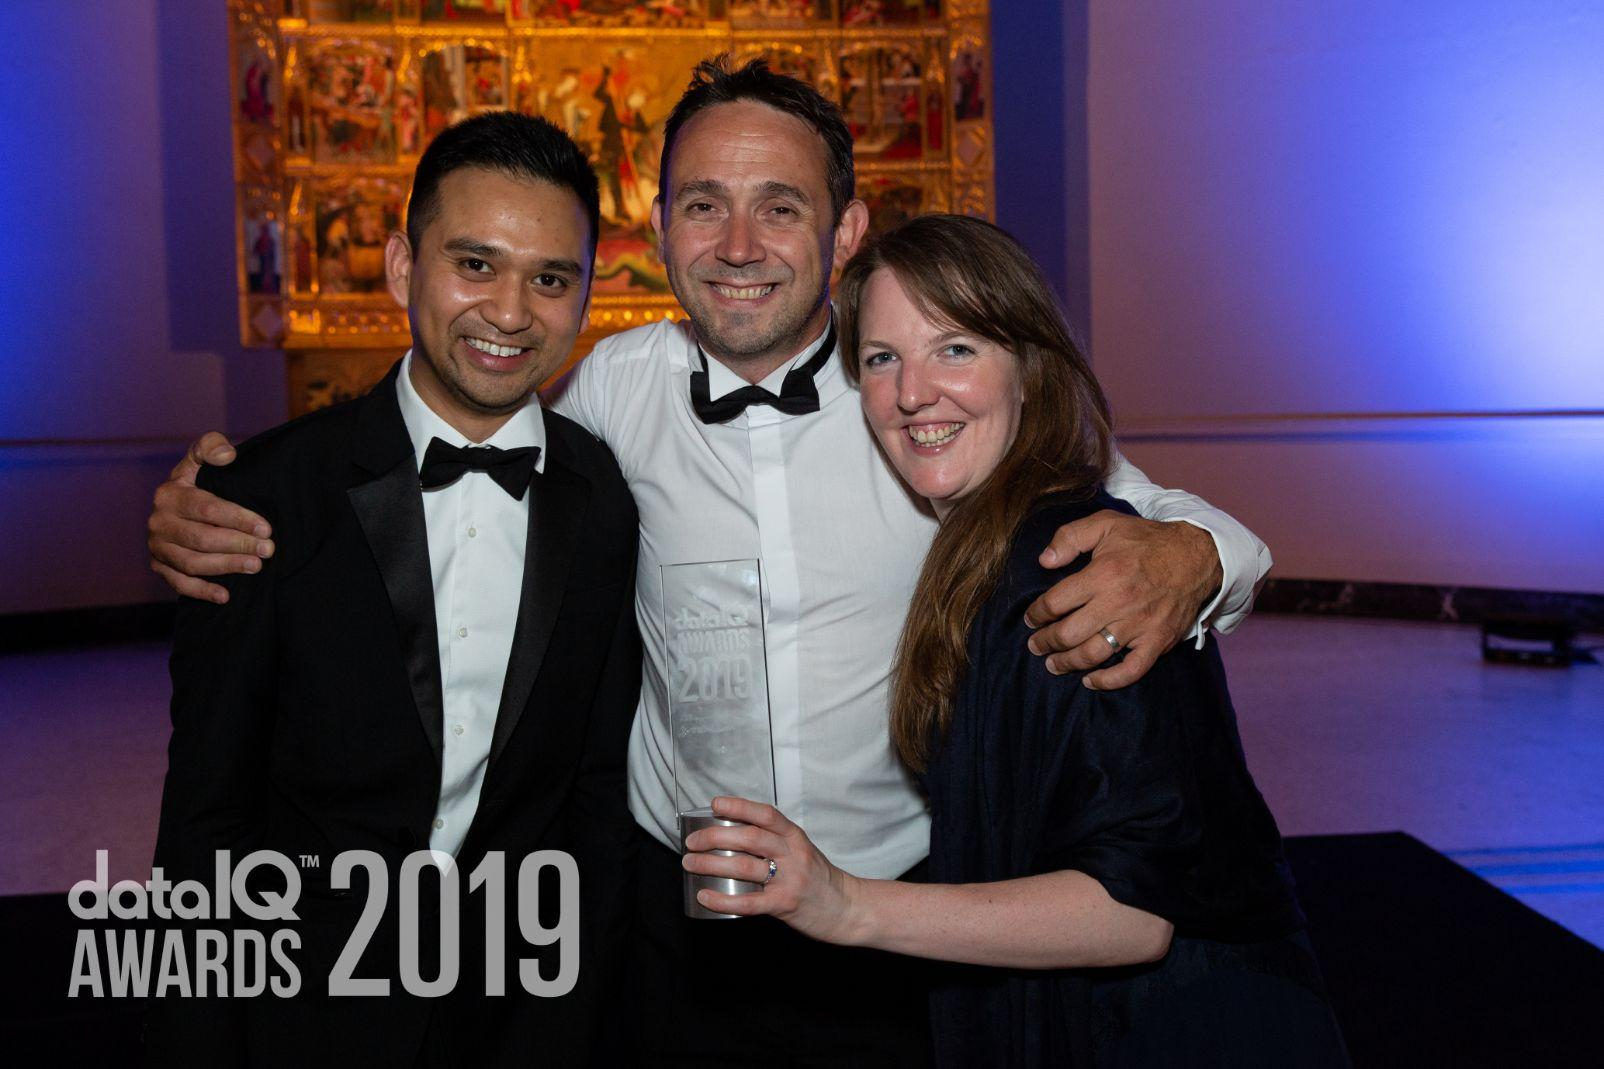 Awards 2019 Image 20